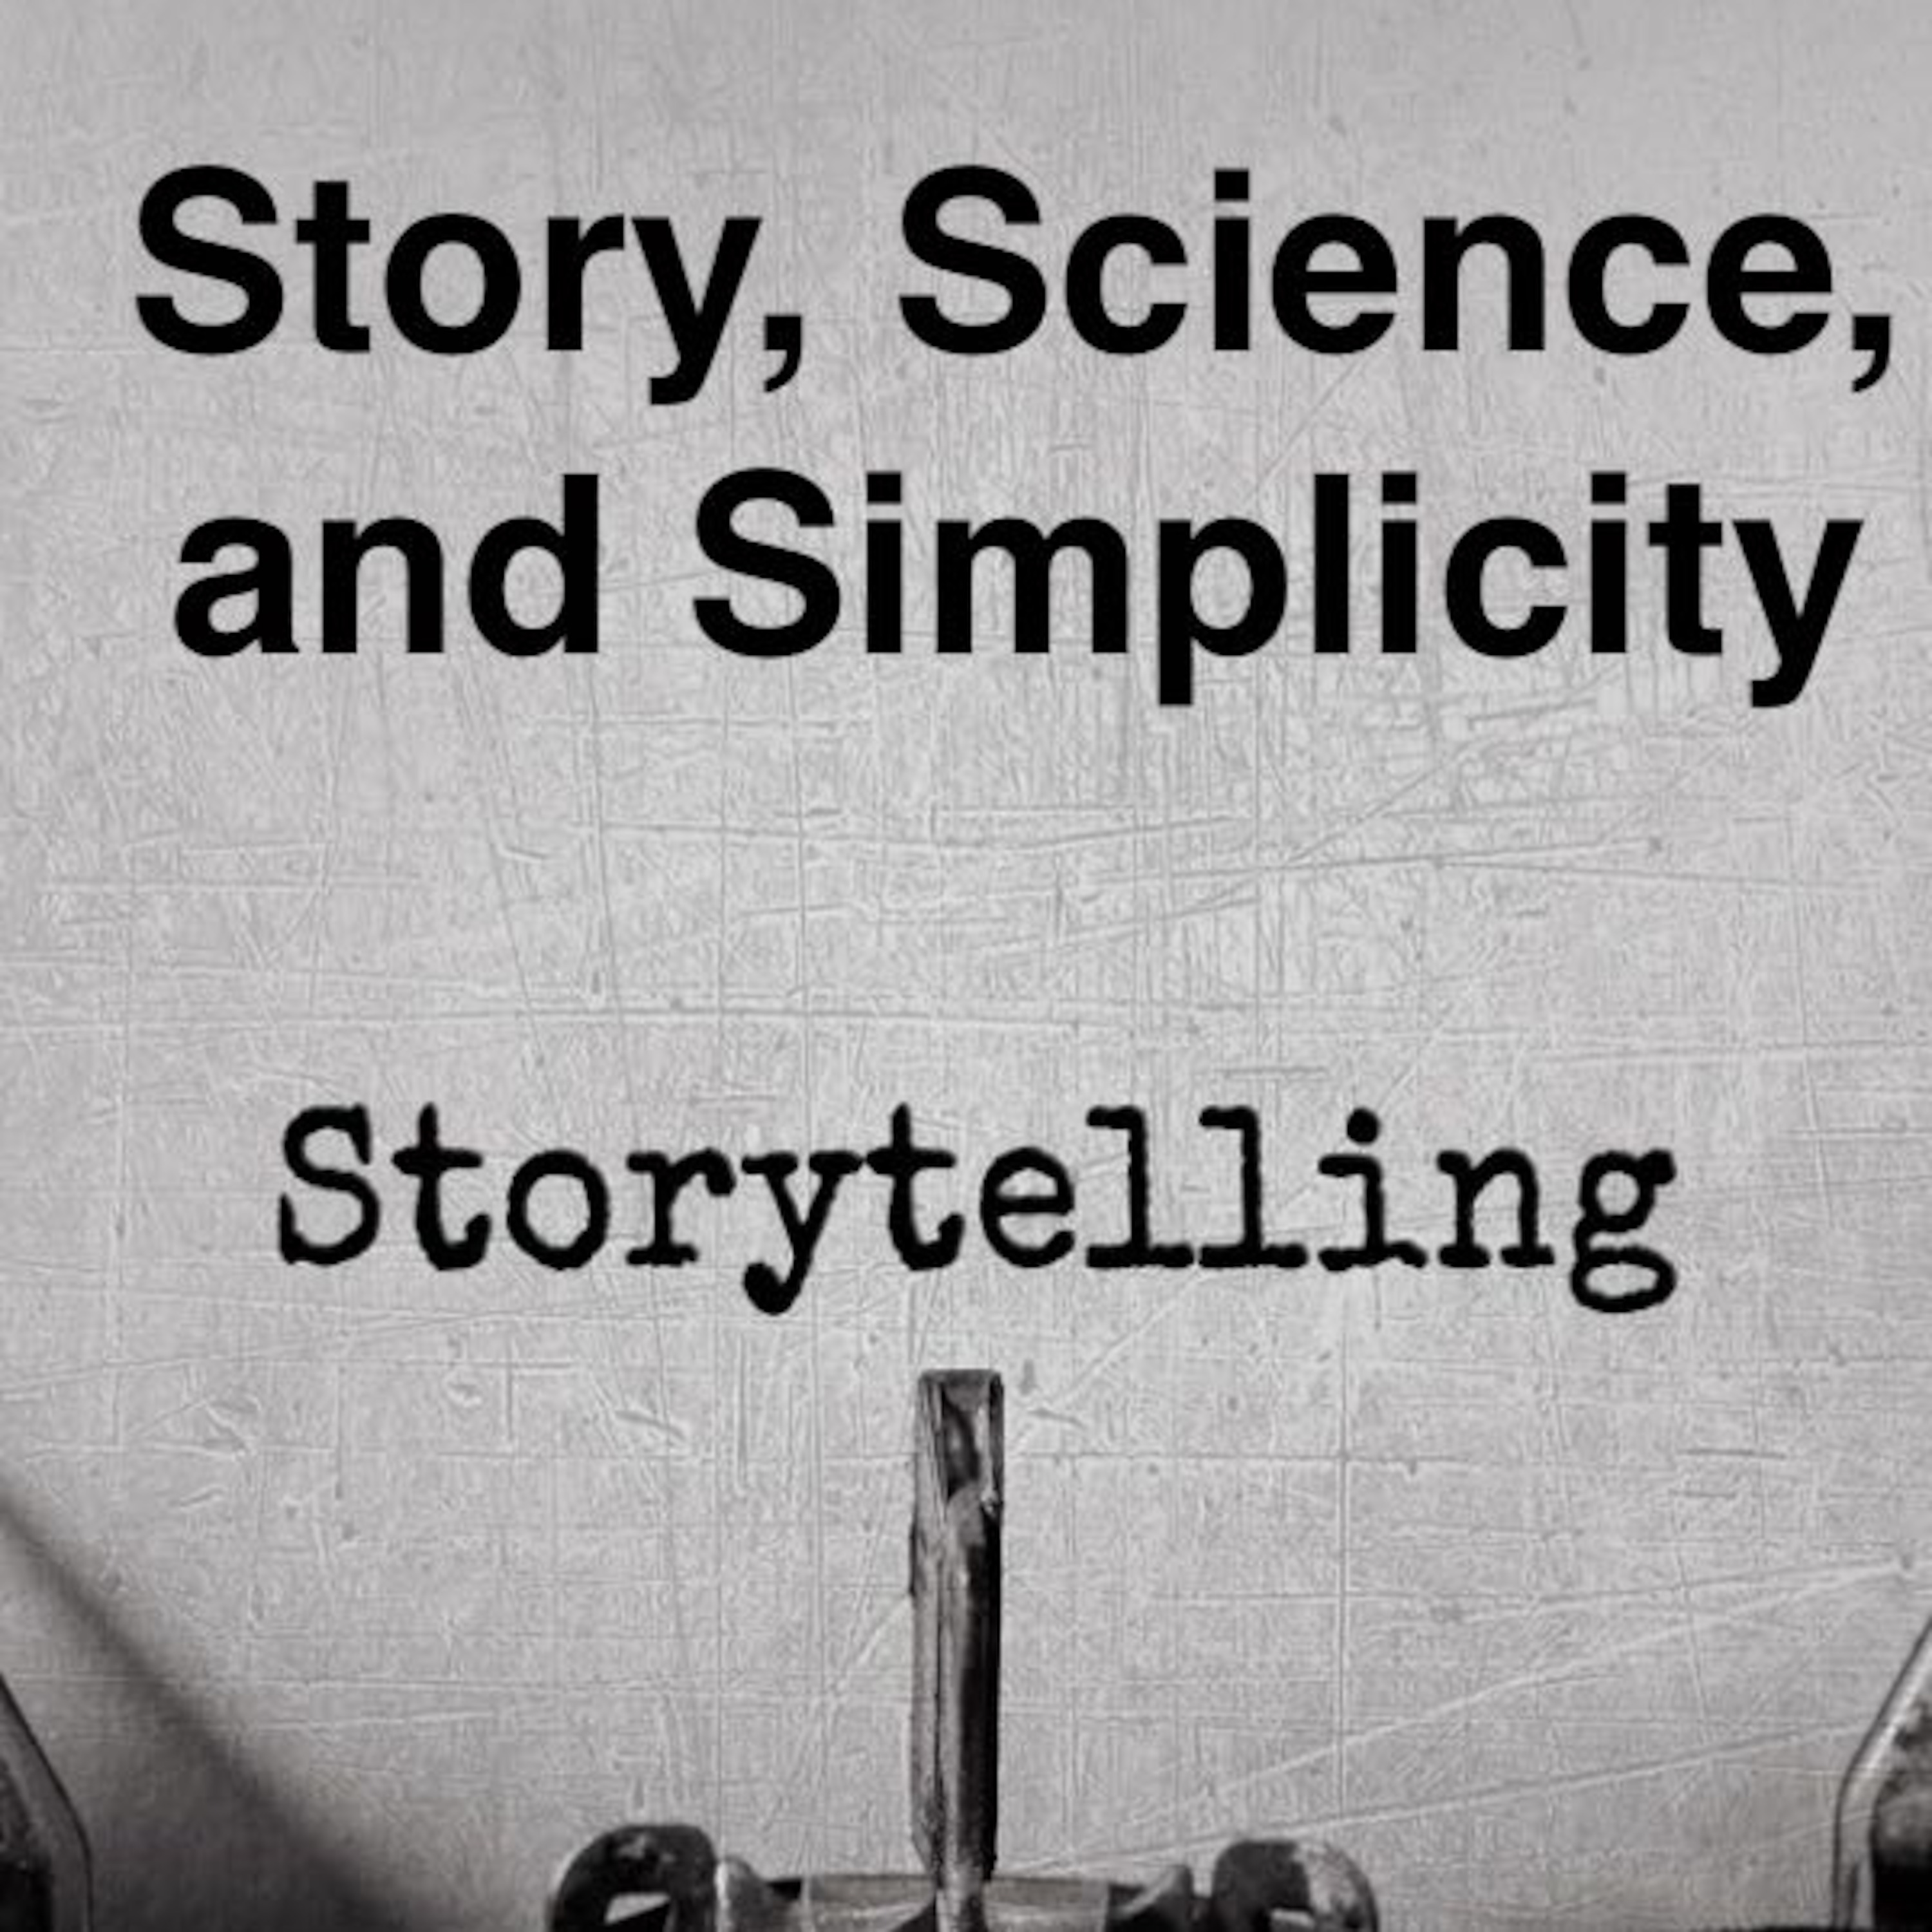 Story, Science, and Simplicity